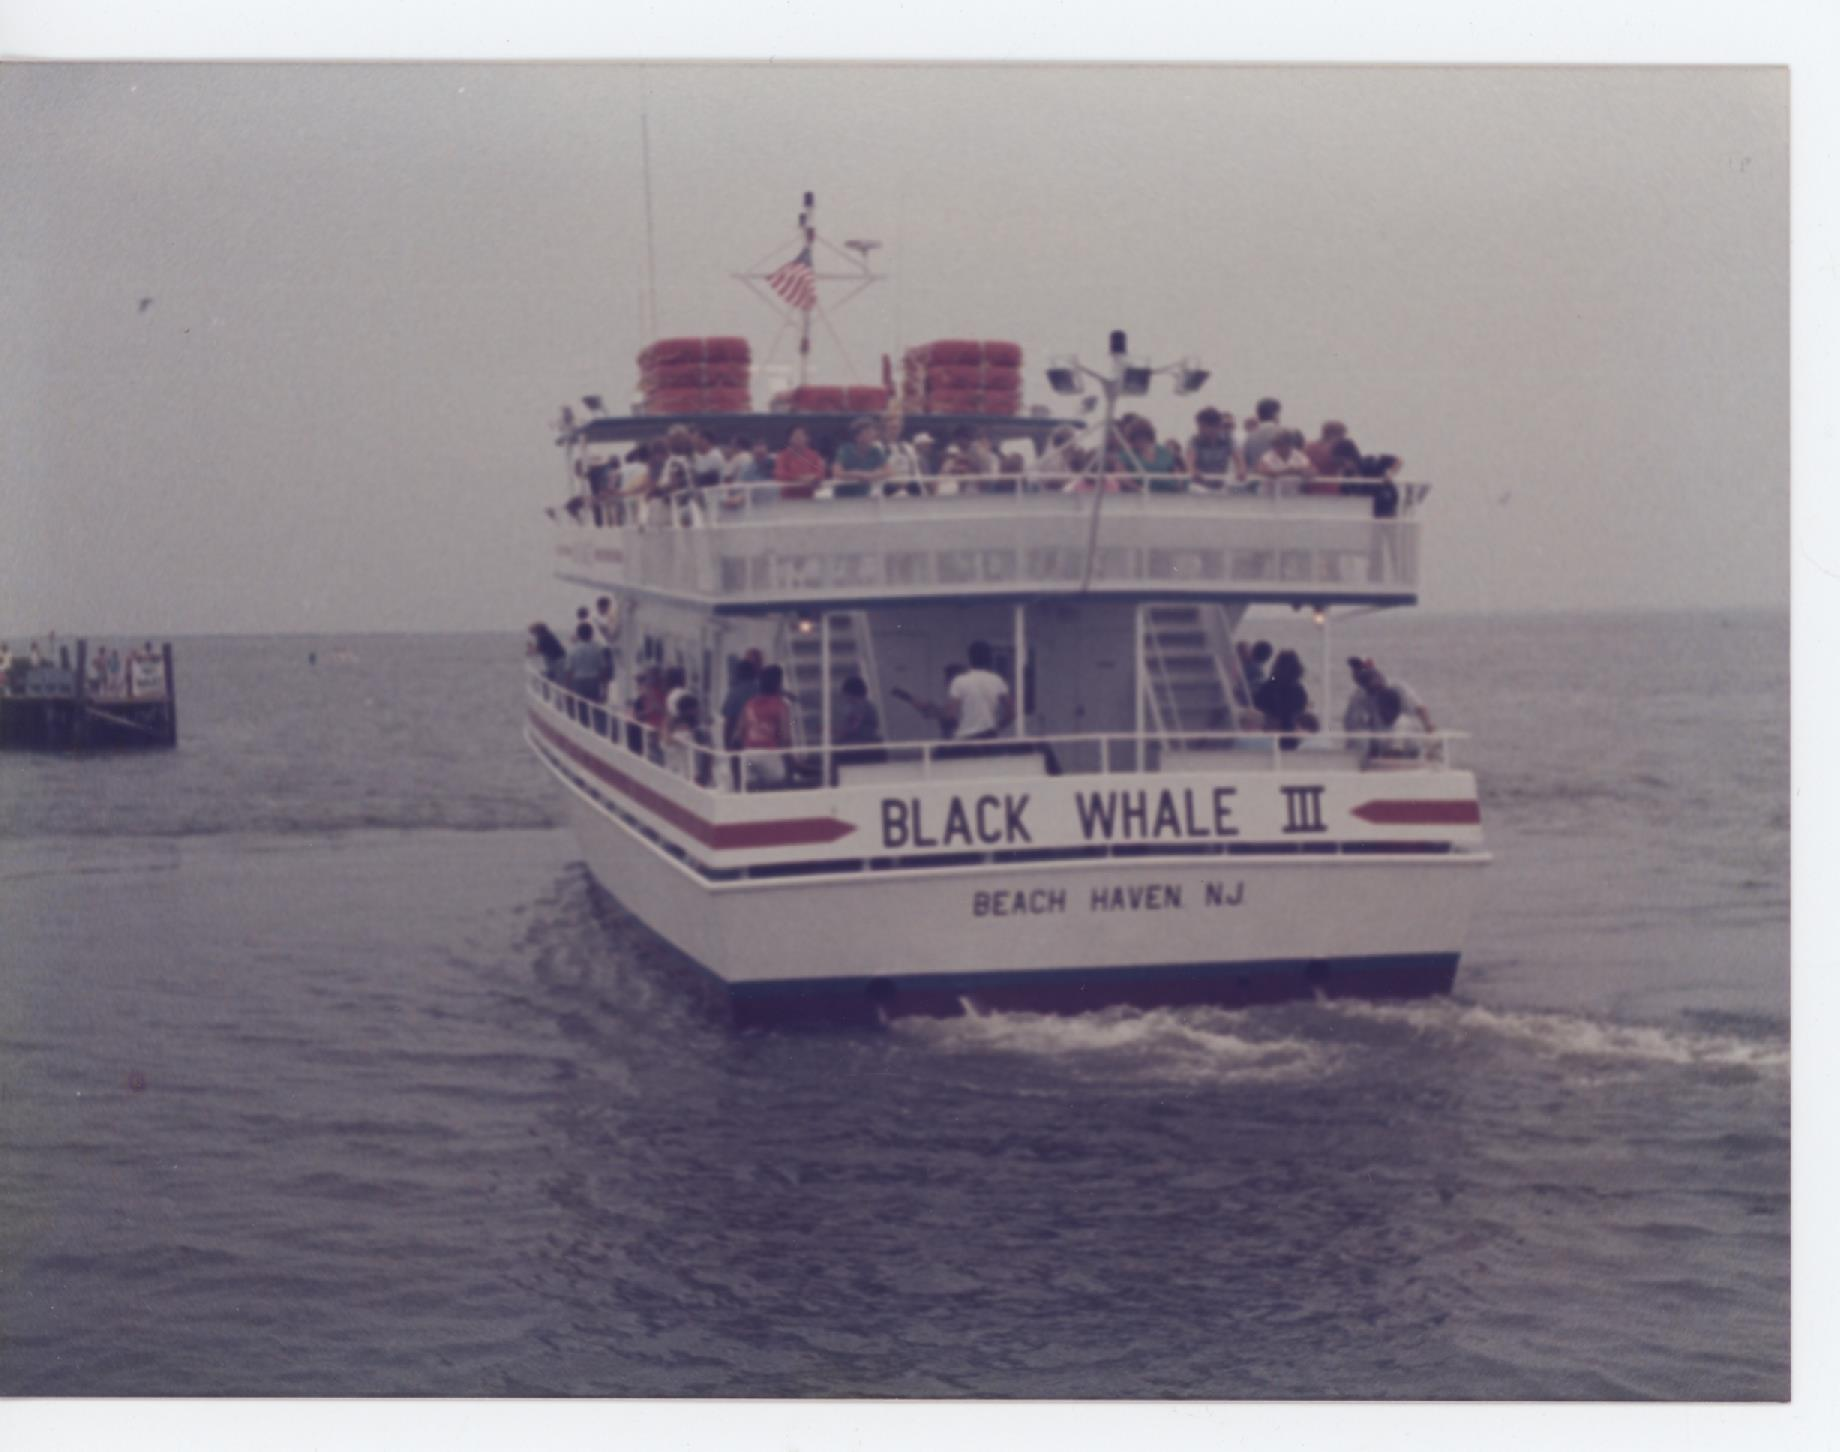 The Black Whale cruises, the namesake. Our restaurants aim to keep the original spirit of LBI alive. Photo courtesy of New Jersey Maritime Museum.